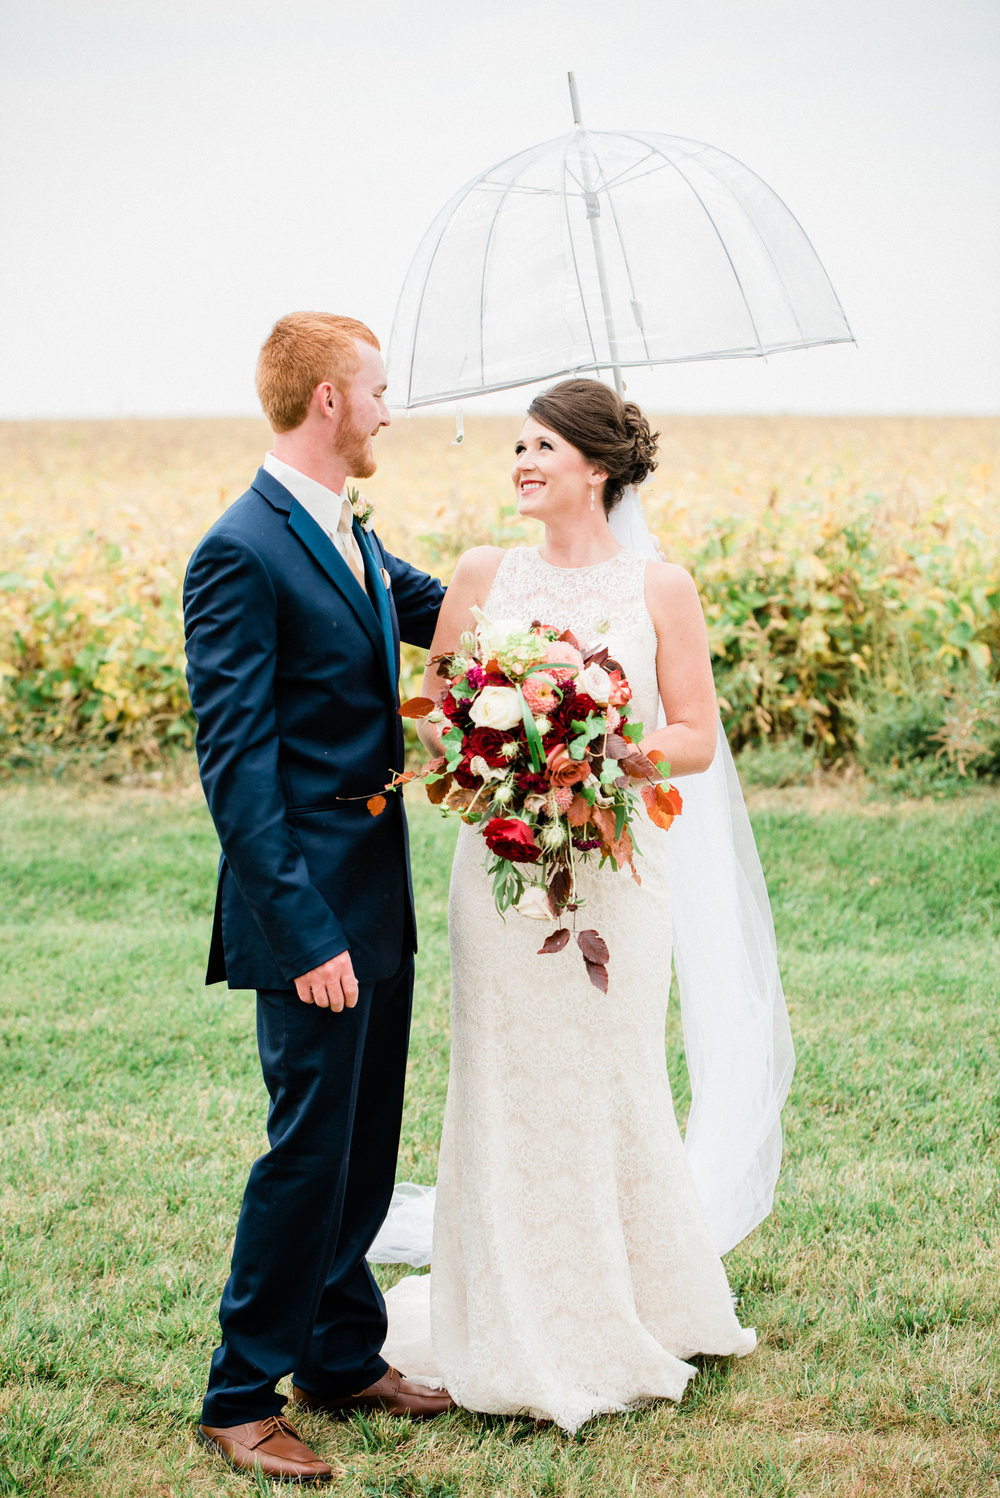 happy bride and groom with an umbrella on a rainy wedding day in reinbeck, ia.